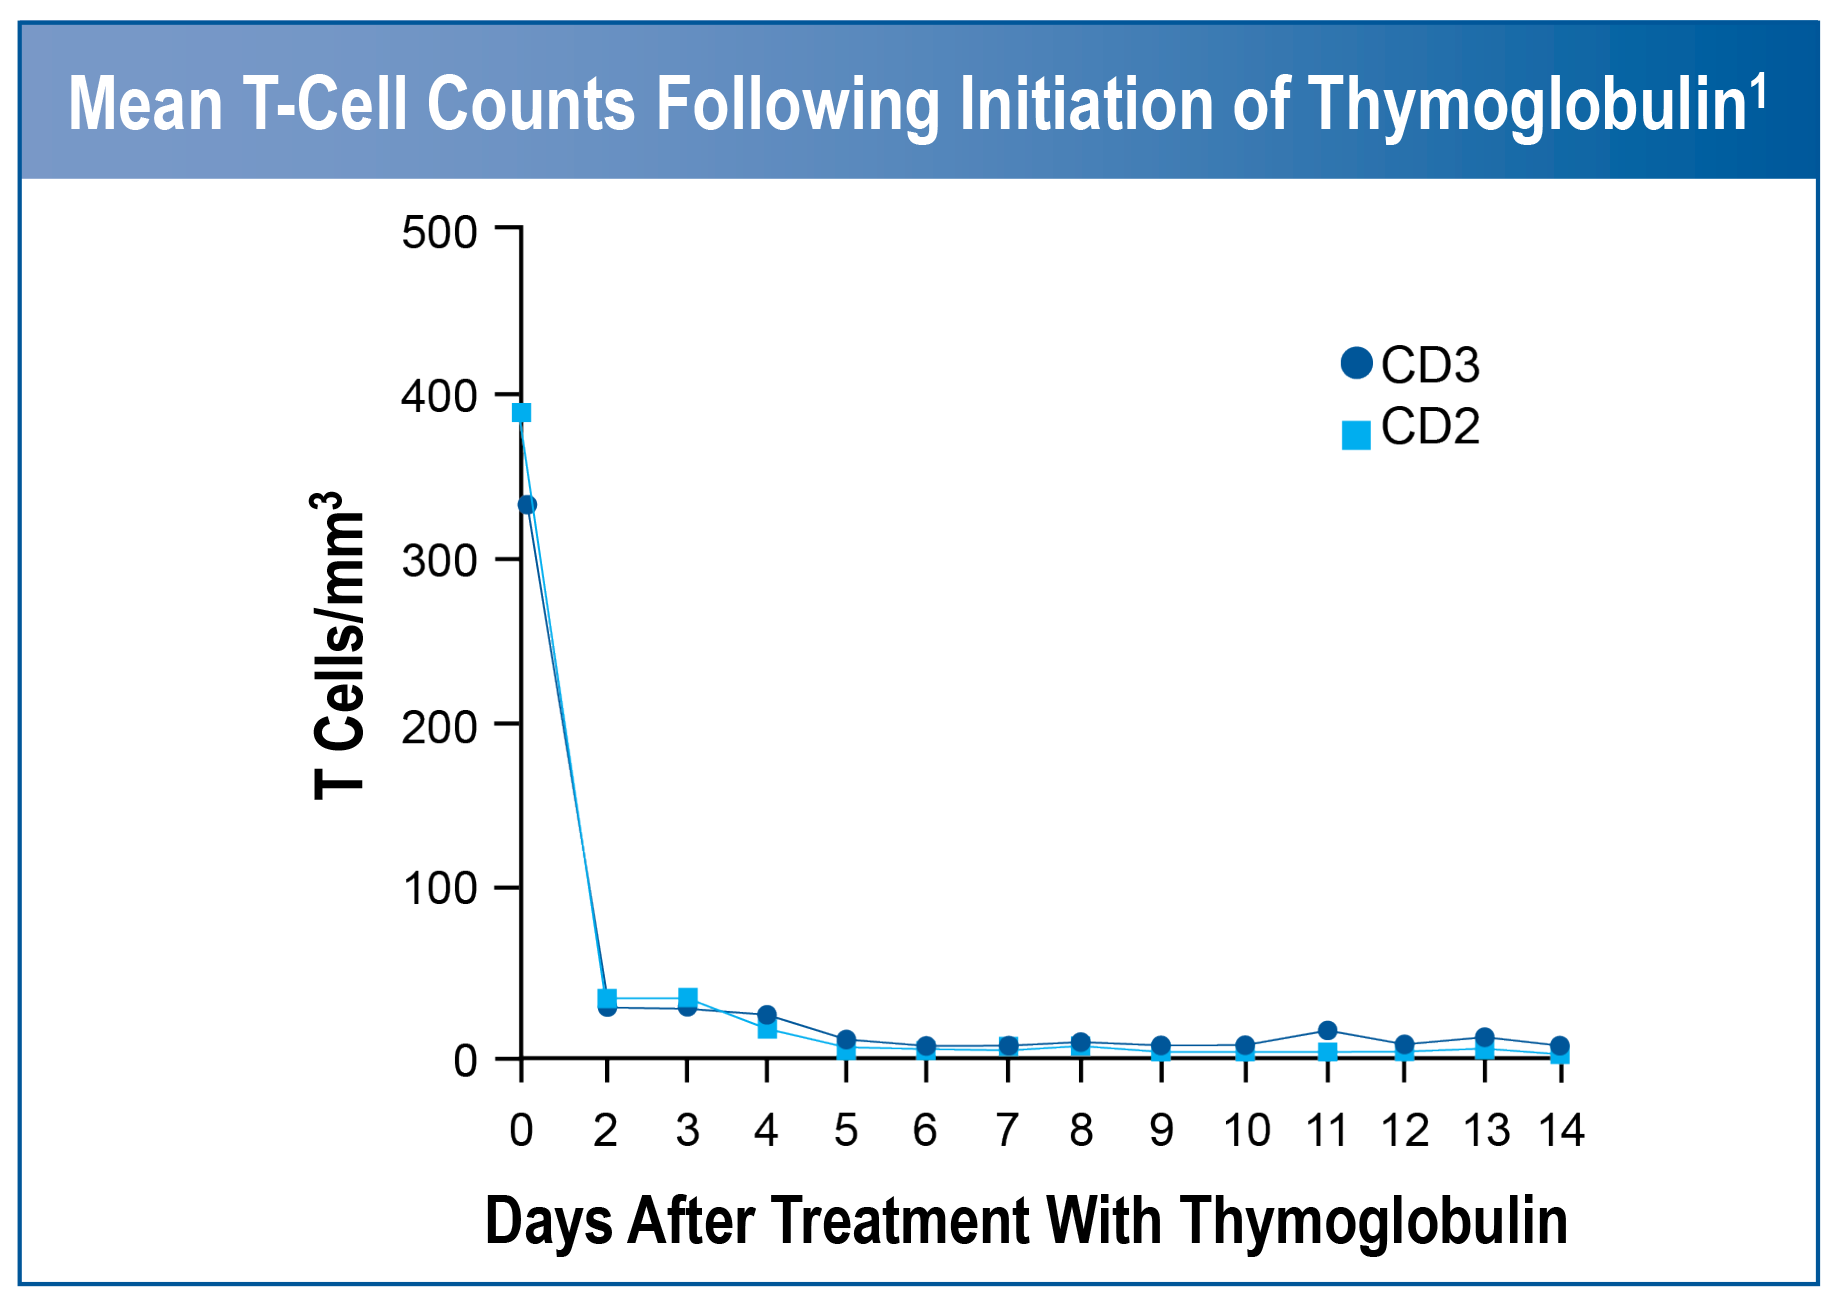 Mean T-Cell counts following initiation of Thymoglobulin therapy chart